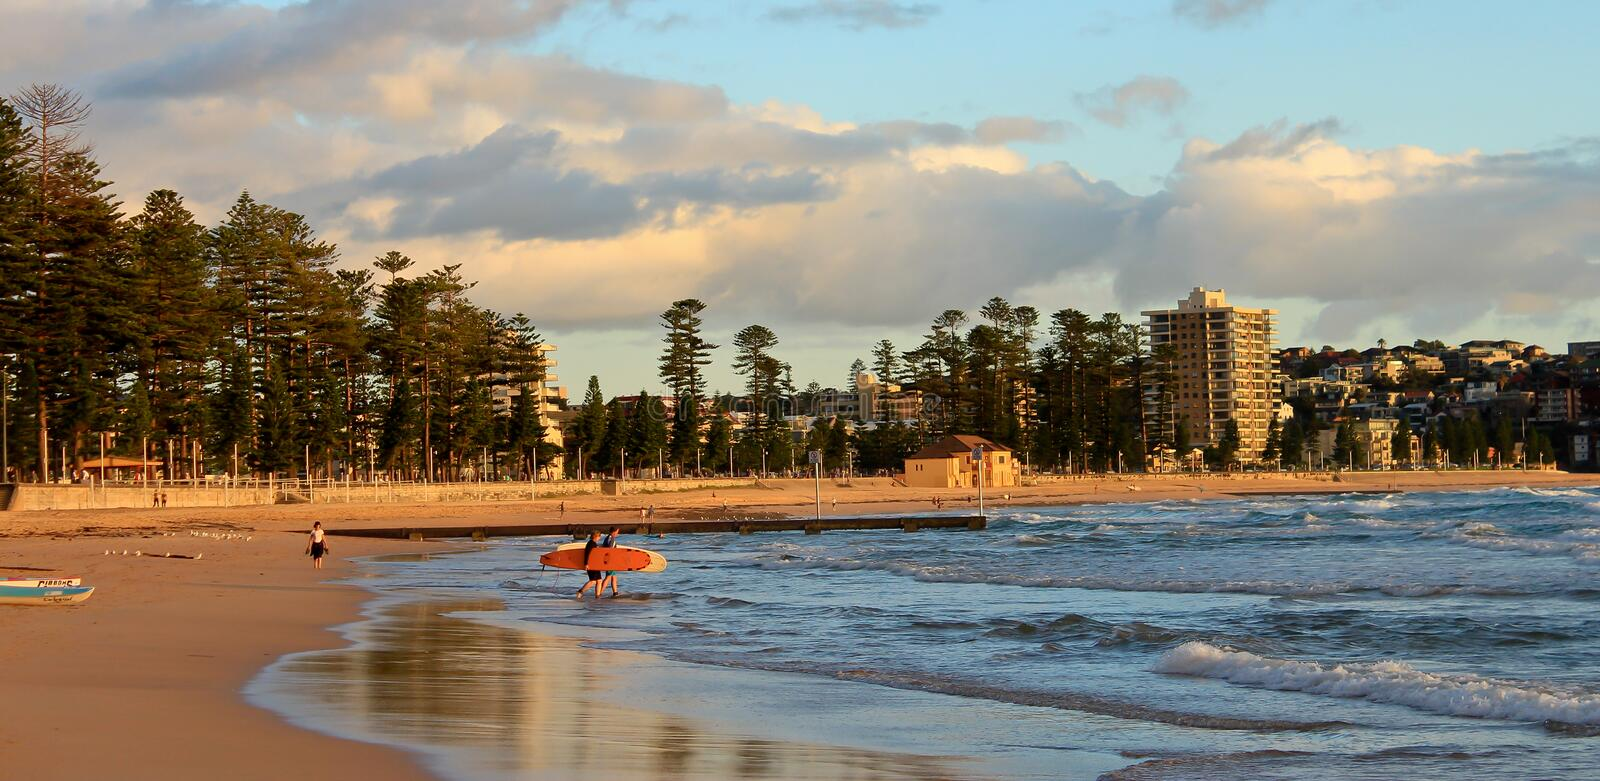 Manly Beach Sydney Australia. Early morning at Manly Beach, Sydney, Australia royalty free stock photography